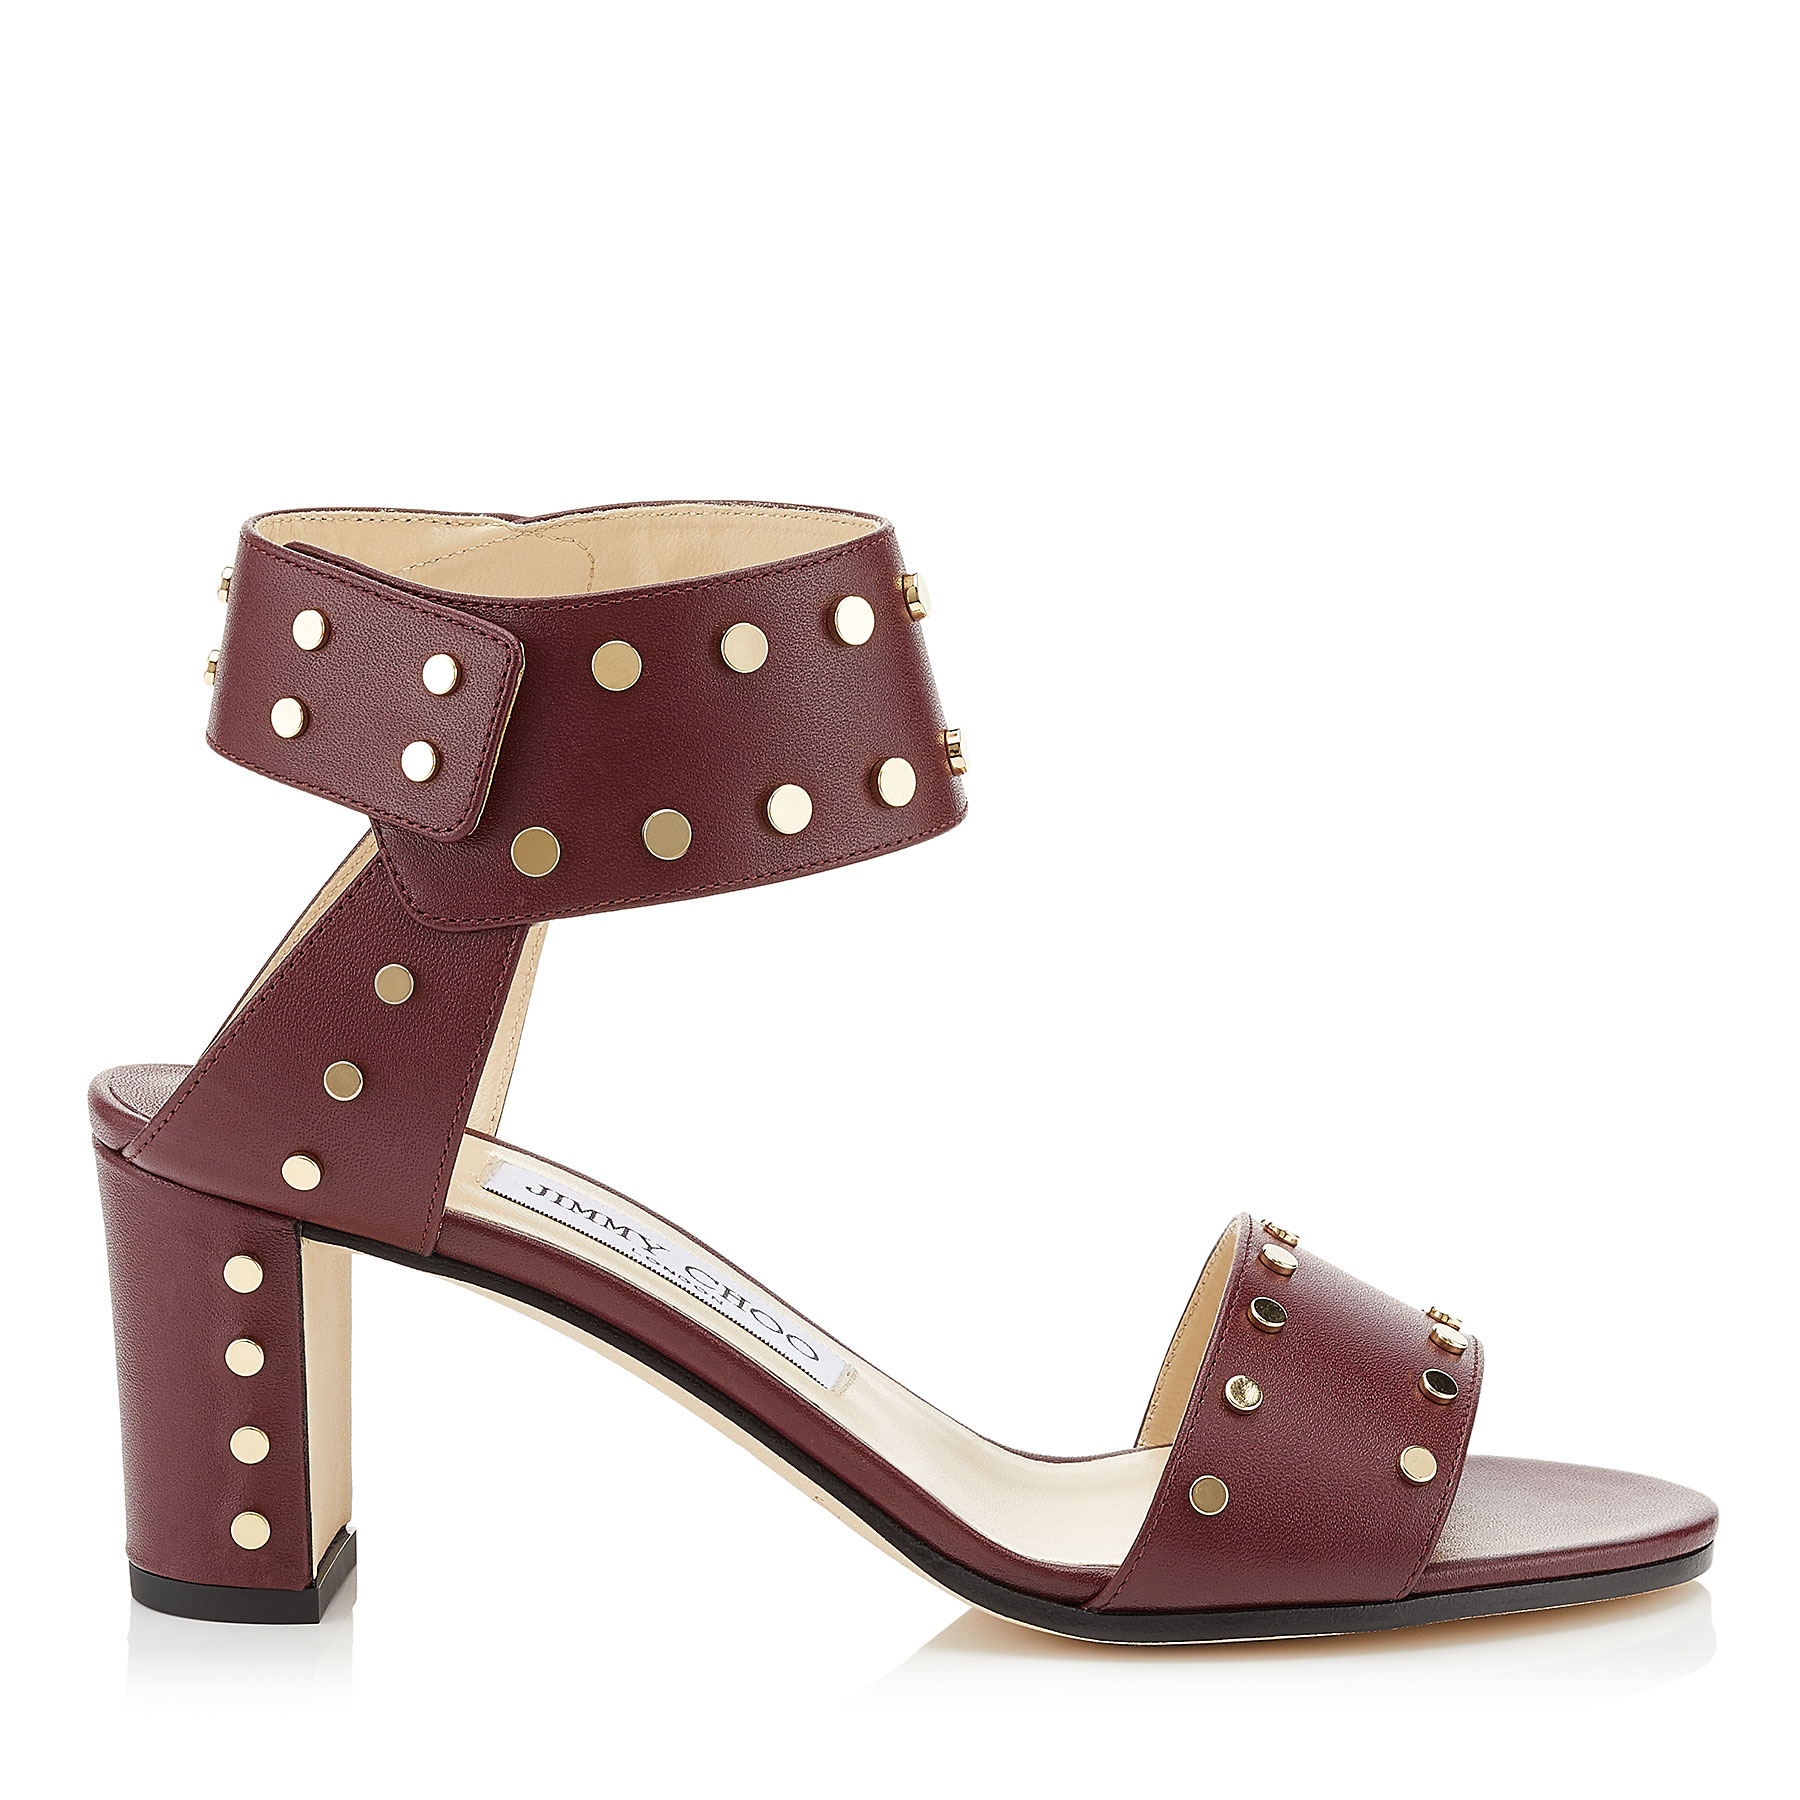 VETO 65 Vino Calf Leather Sandals with Gold Studs by Jimmy Choo